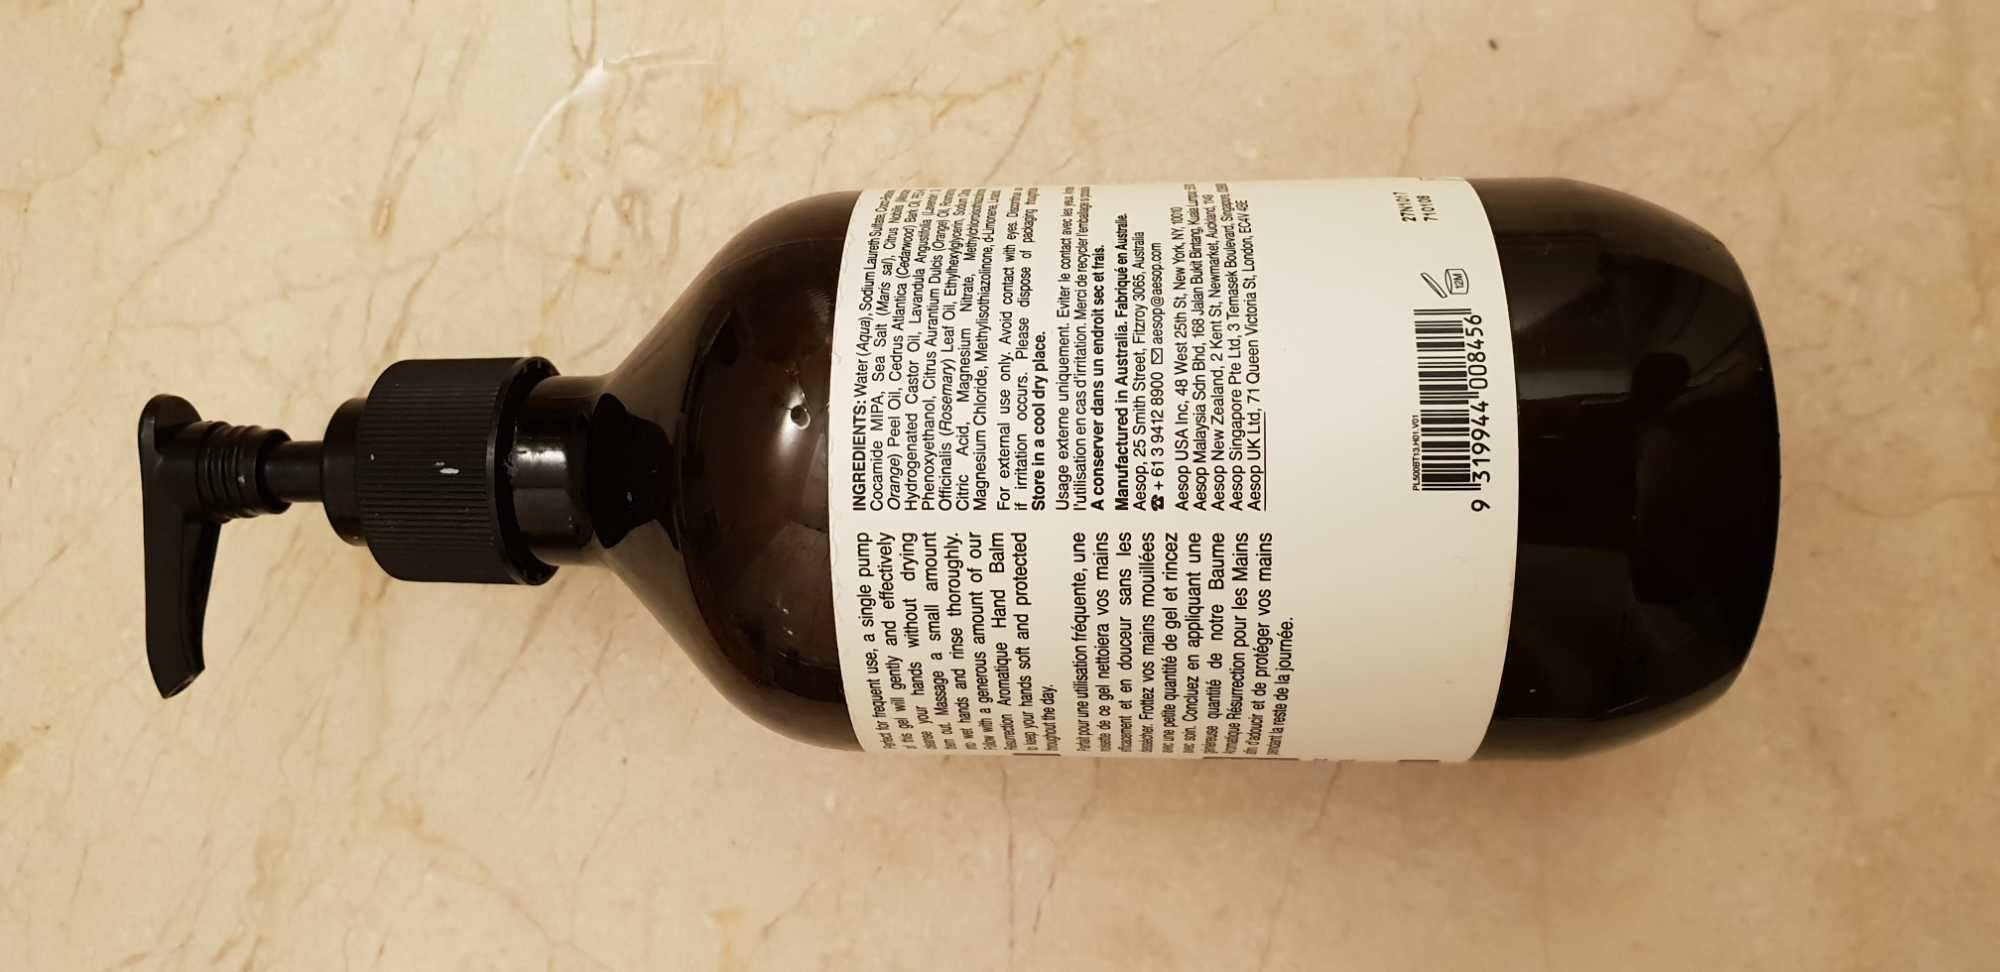 Résurrection Aromatique Hand Wash - Product - fr